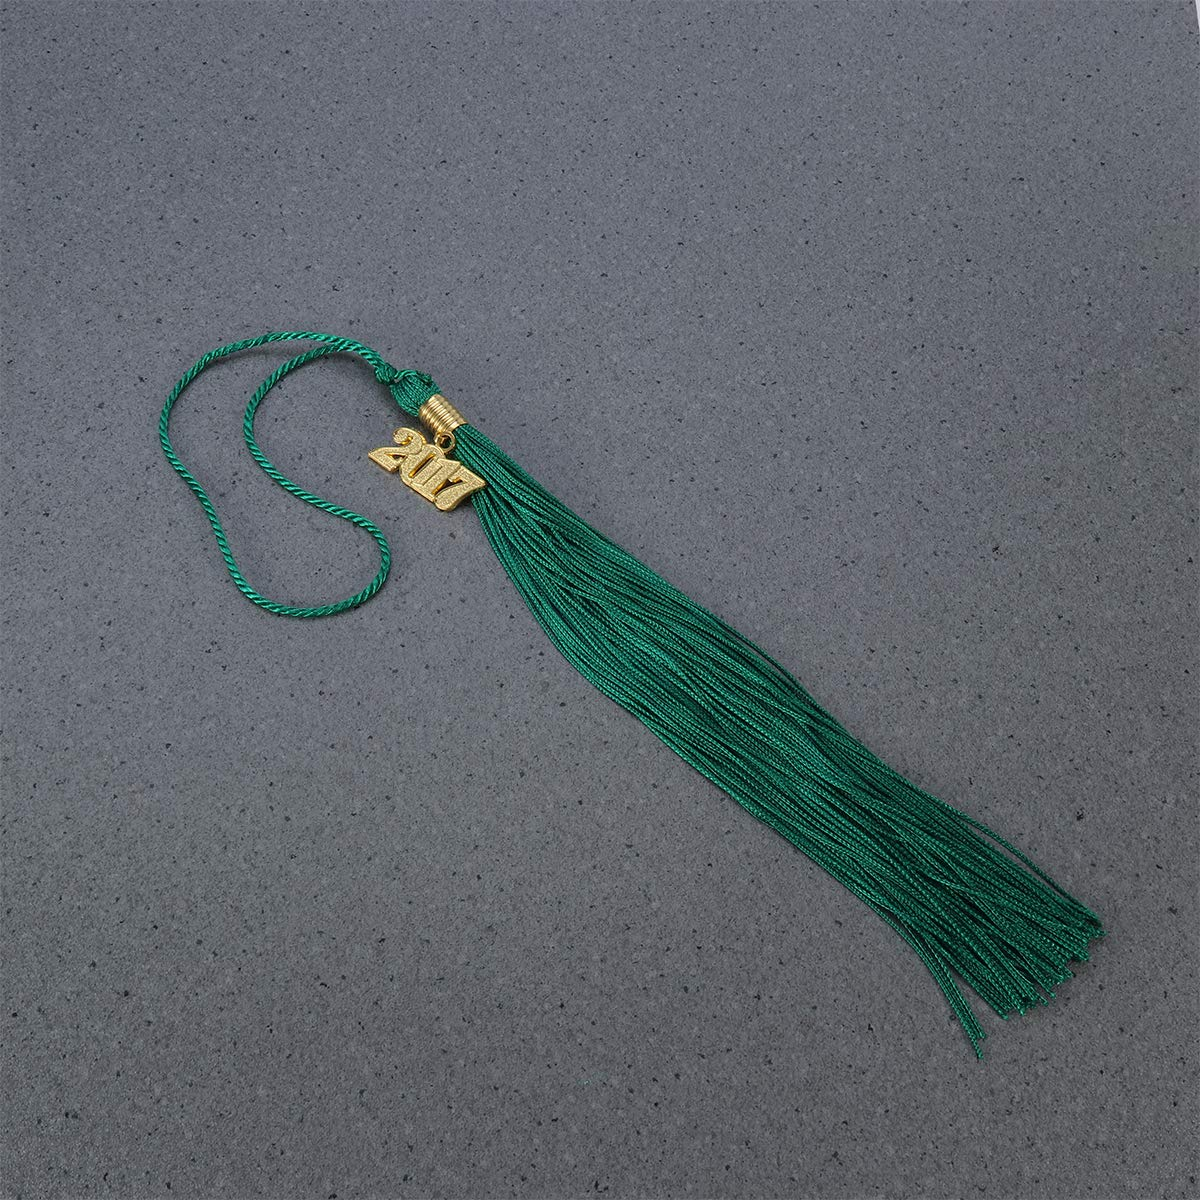 Green Academic 2017 Graduation Gown Tassels for Graduate Ceremony